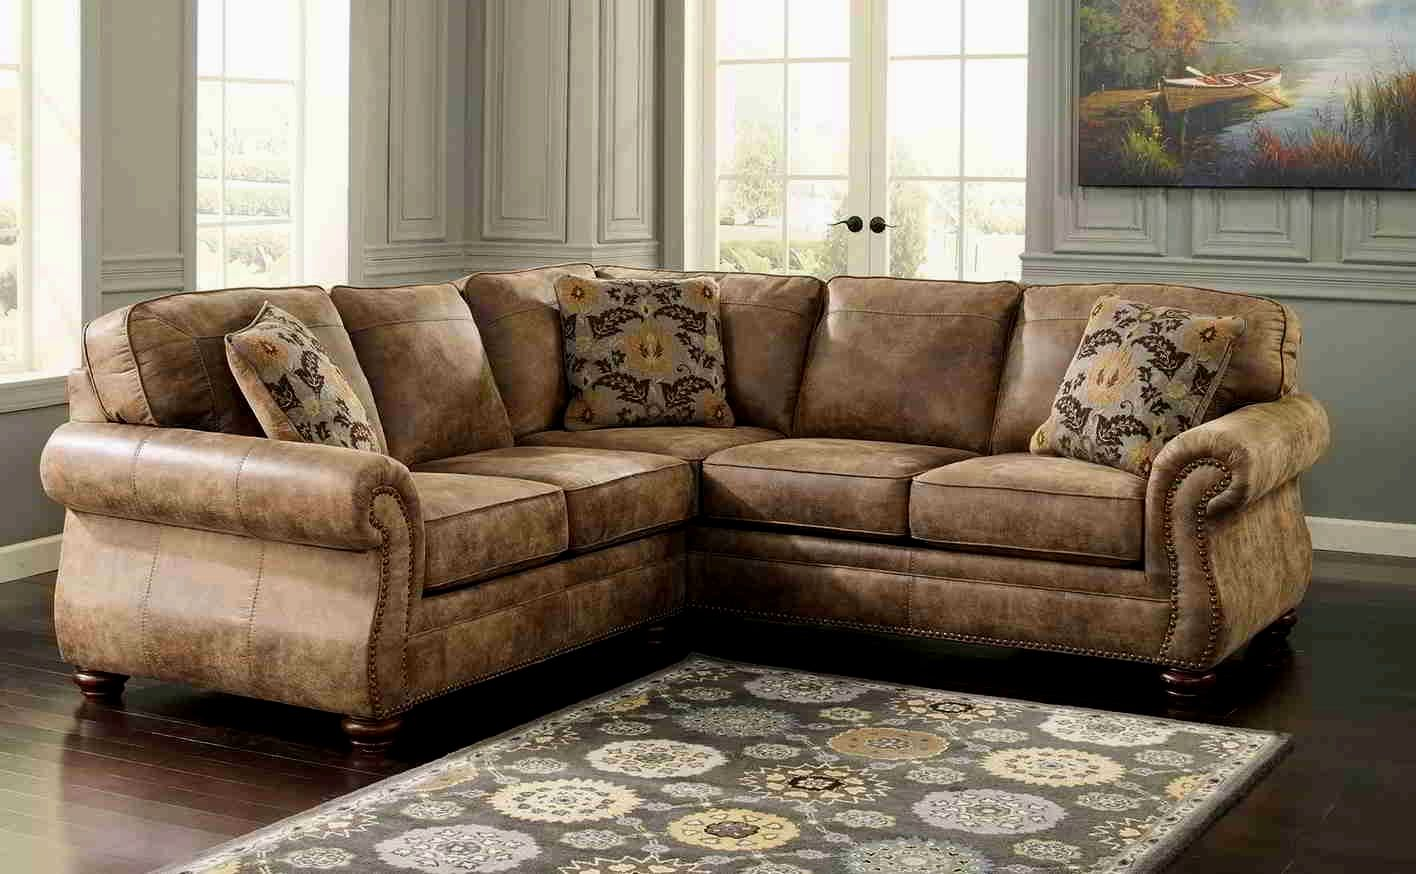 Beautiful Reclining Sectional Sofas For Small Spaces